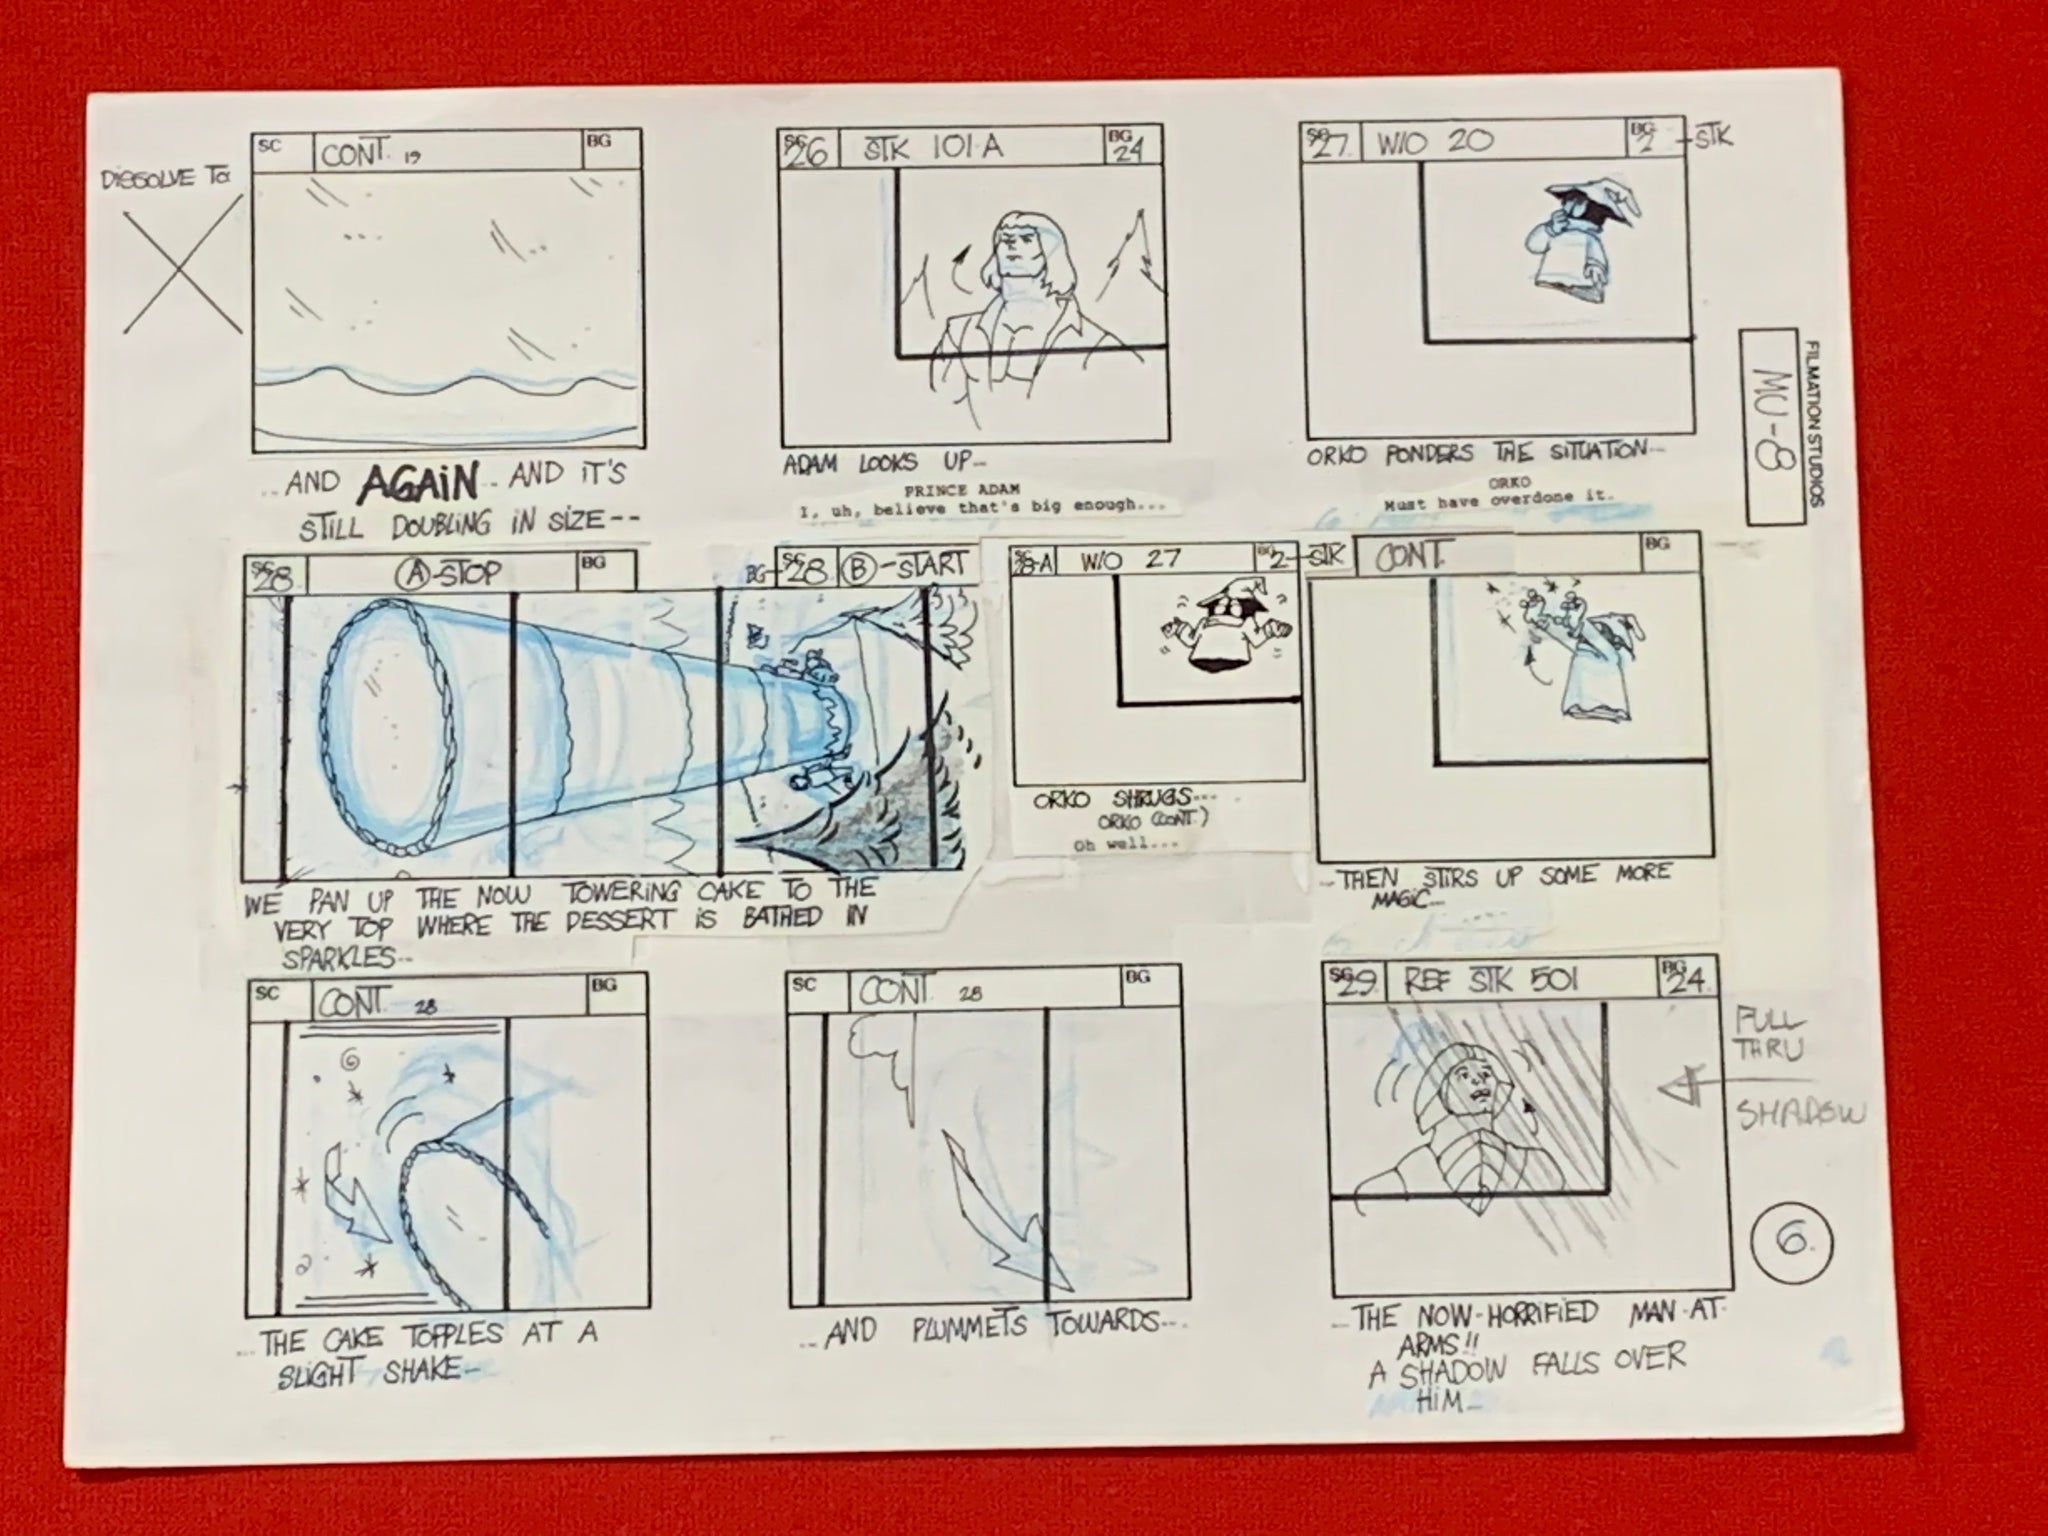 He-Man and Masters of the Universe Storyboard 8 (EX0735) - Animation Legends